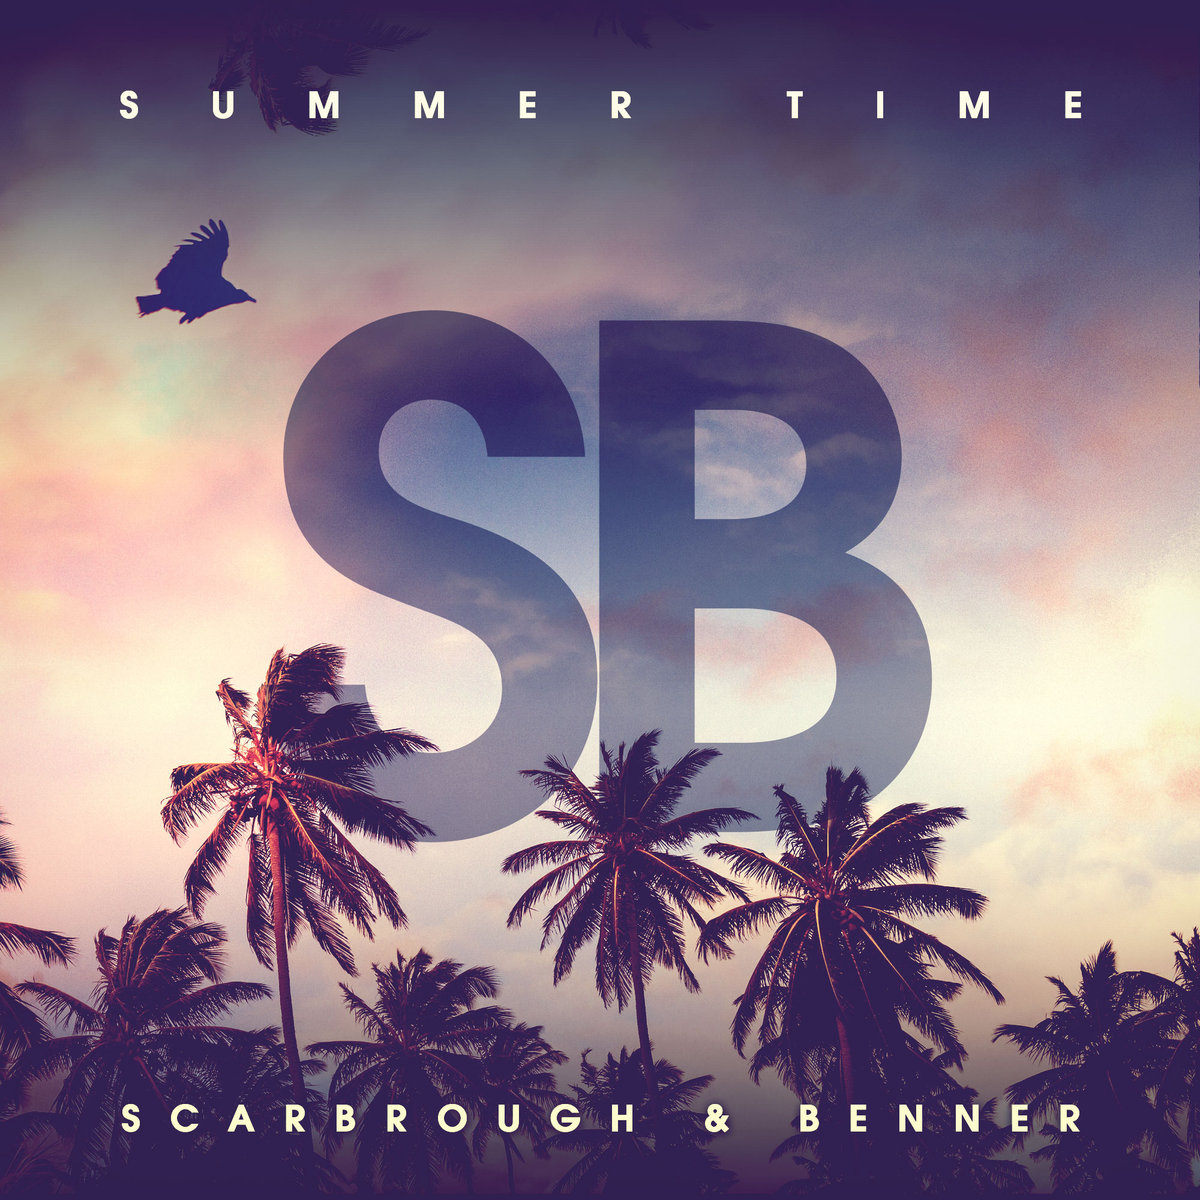 Scarbrough & Benner - Summertime